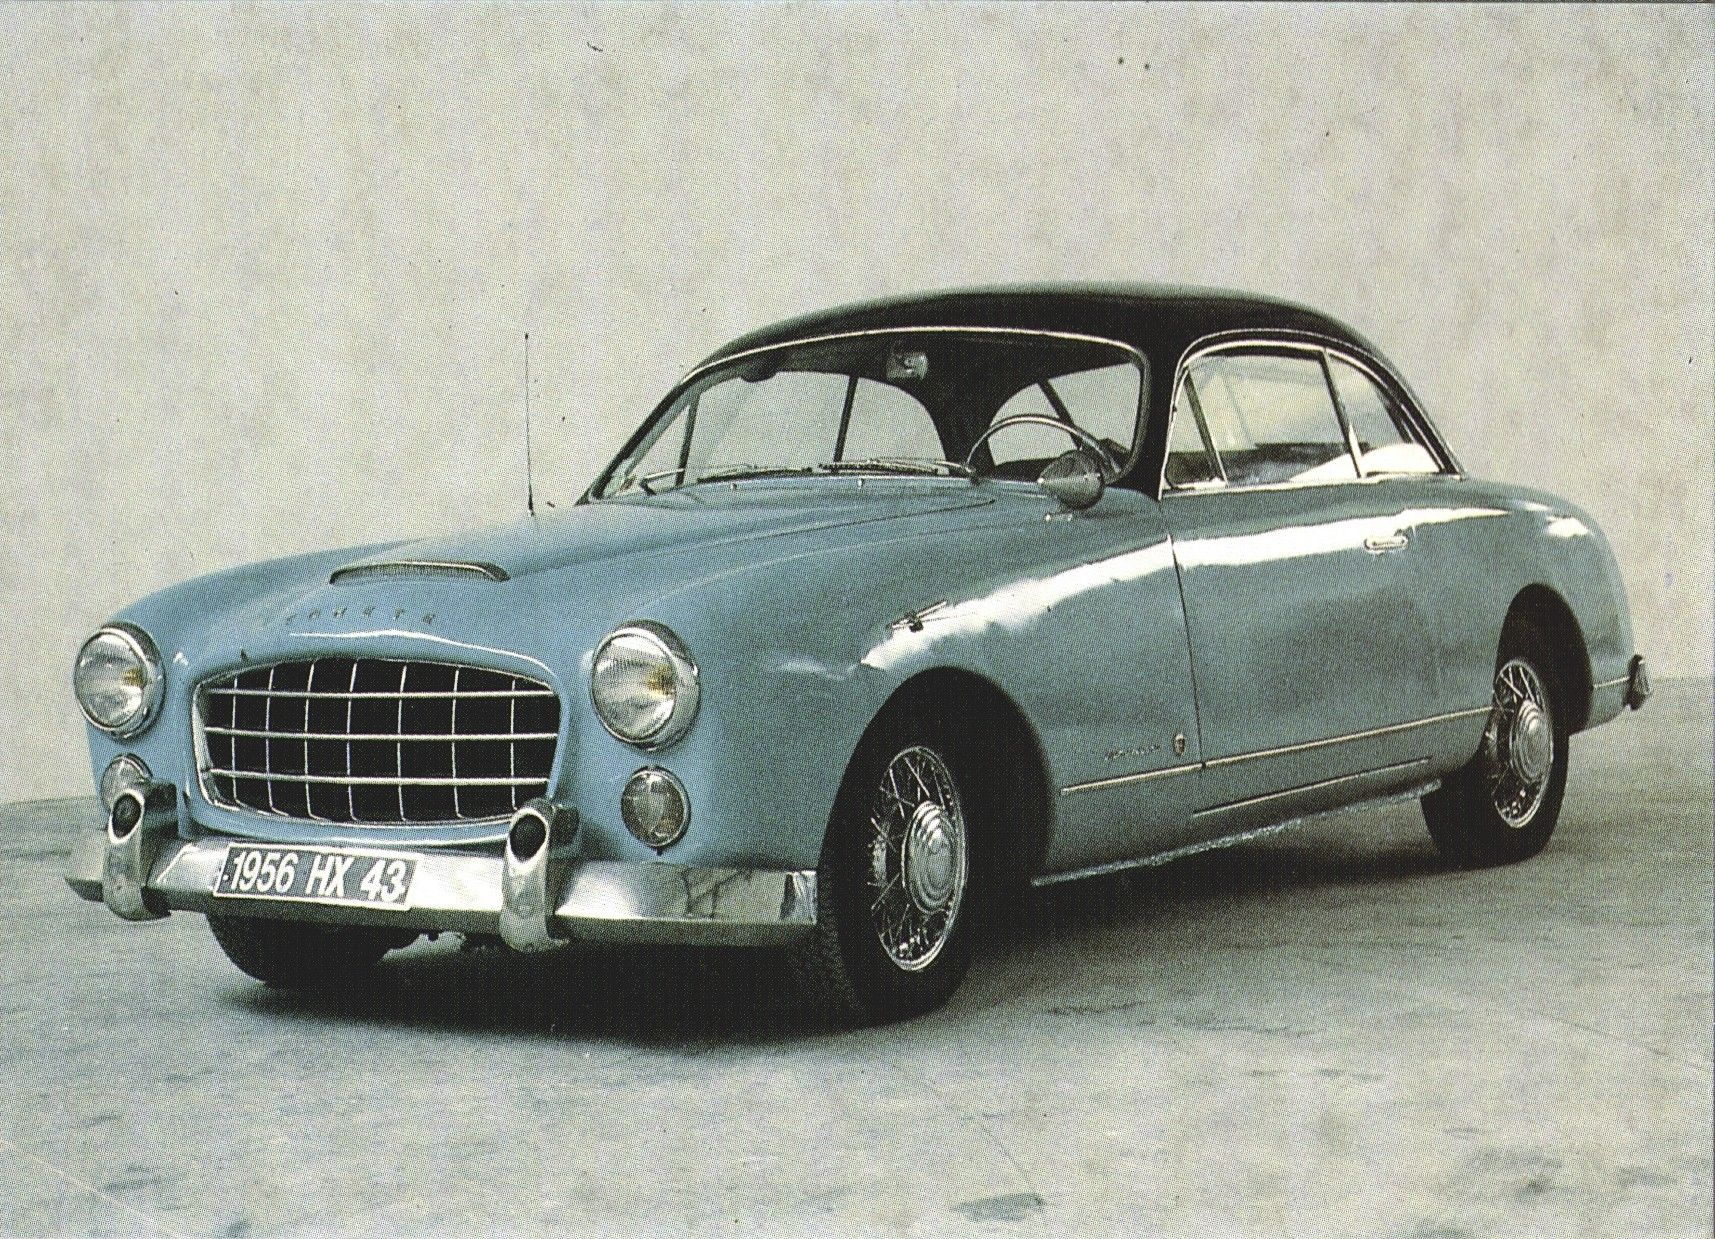 Ford s a f vedette 1953 d couvrable scan_121203_0011